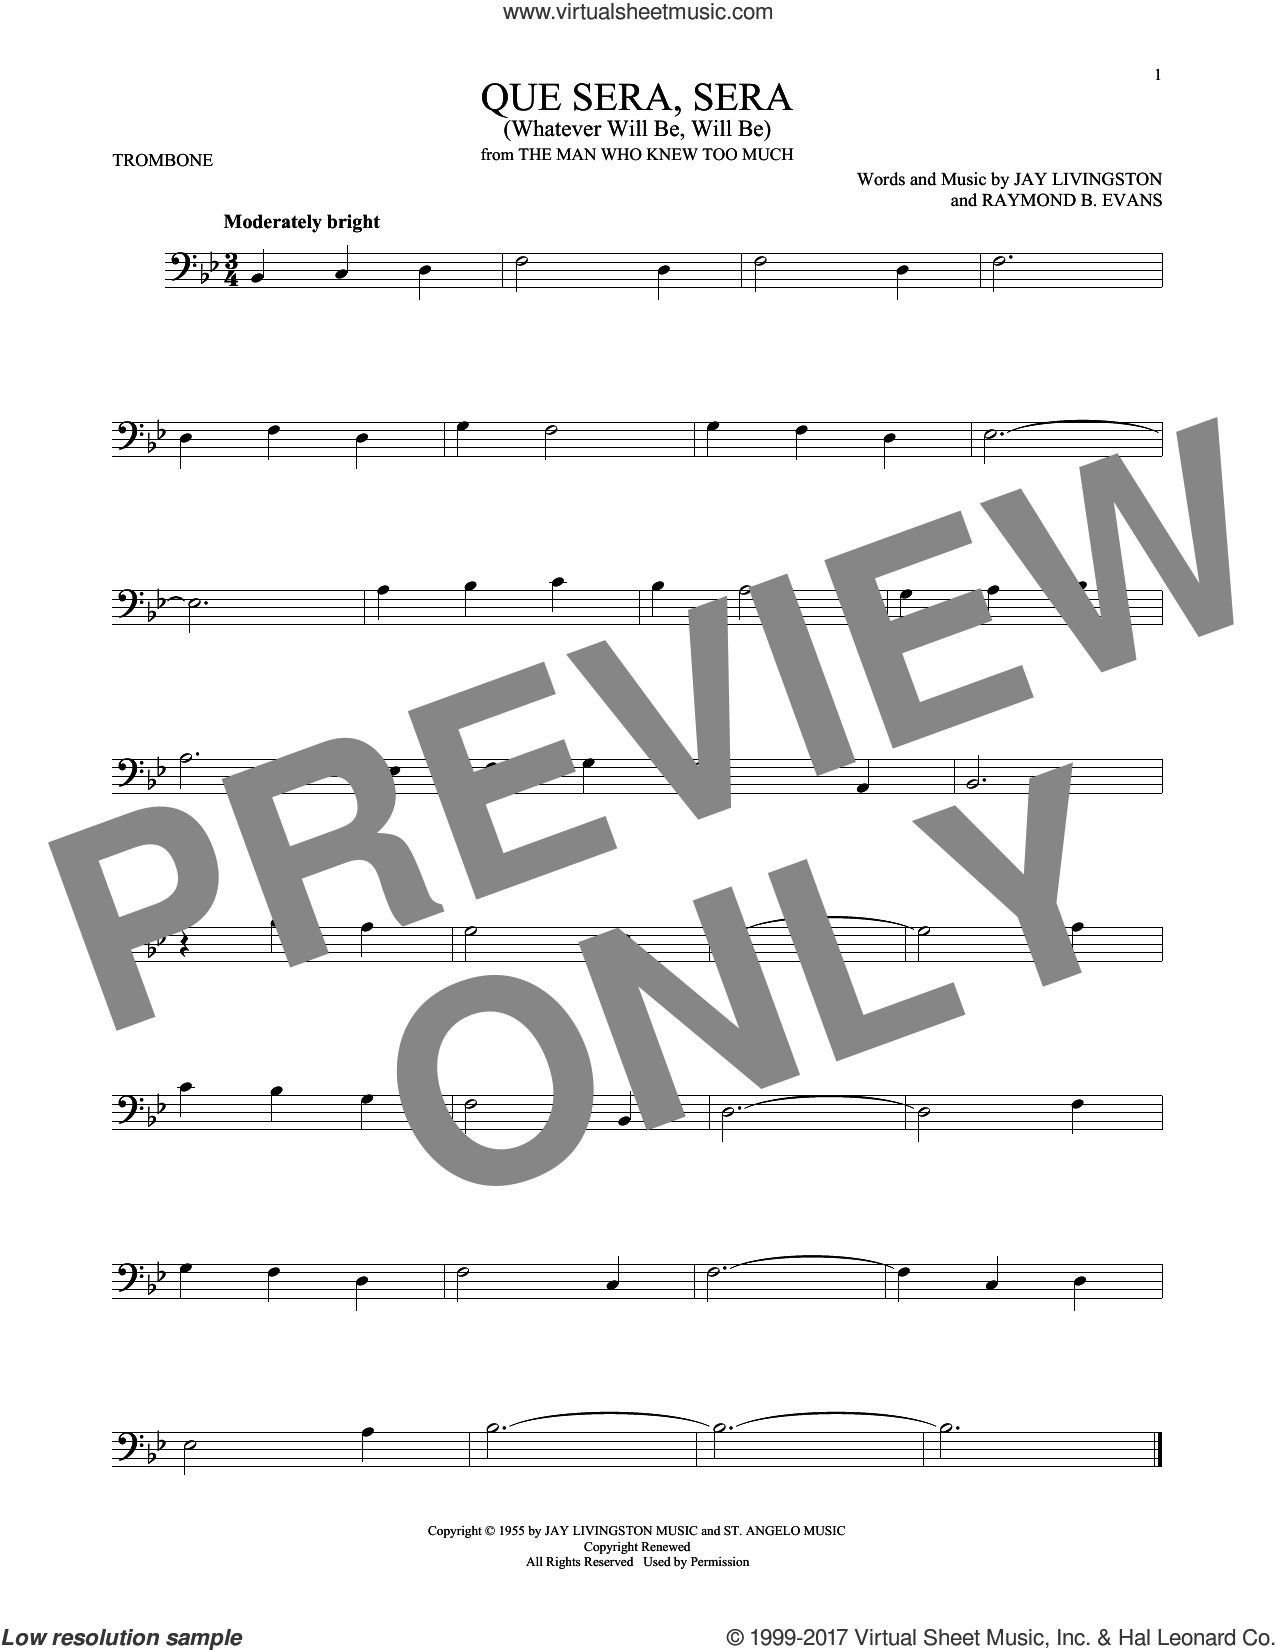 Que Sera, Sera (Whatever Will Be, Will Be) sheet music for trombone solo by Doris Day, Jay Livingston and Raymond B. Evans, intermediate skill level